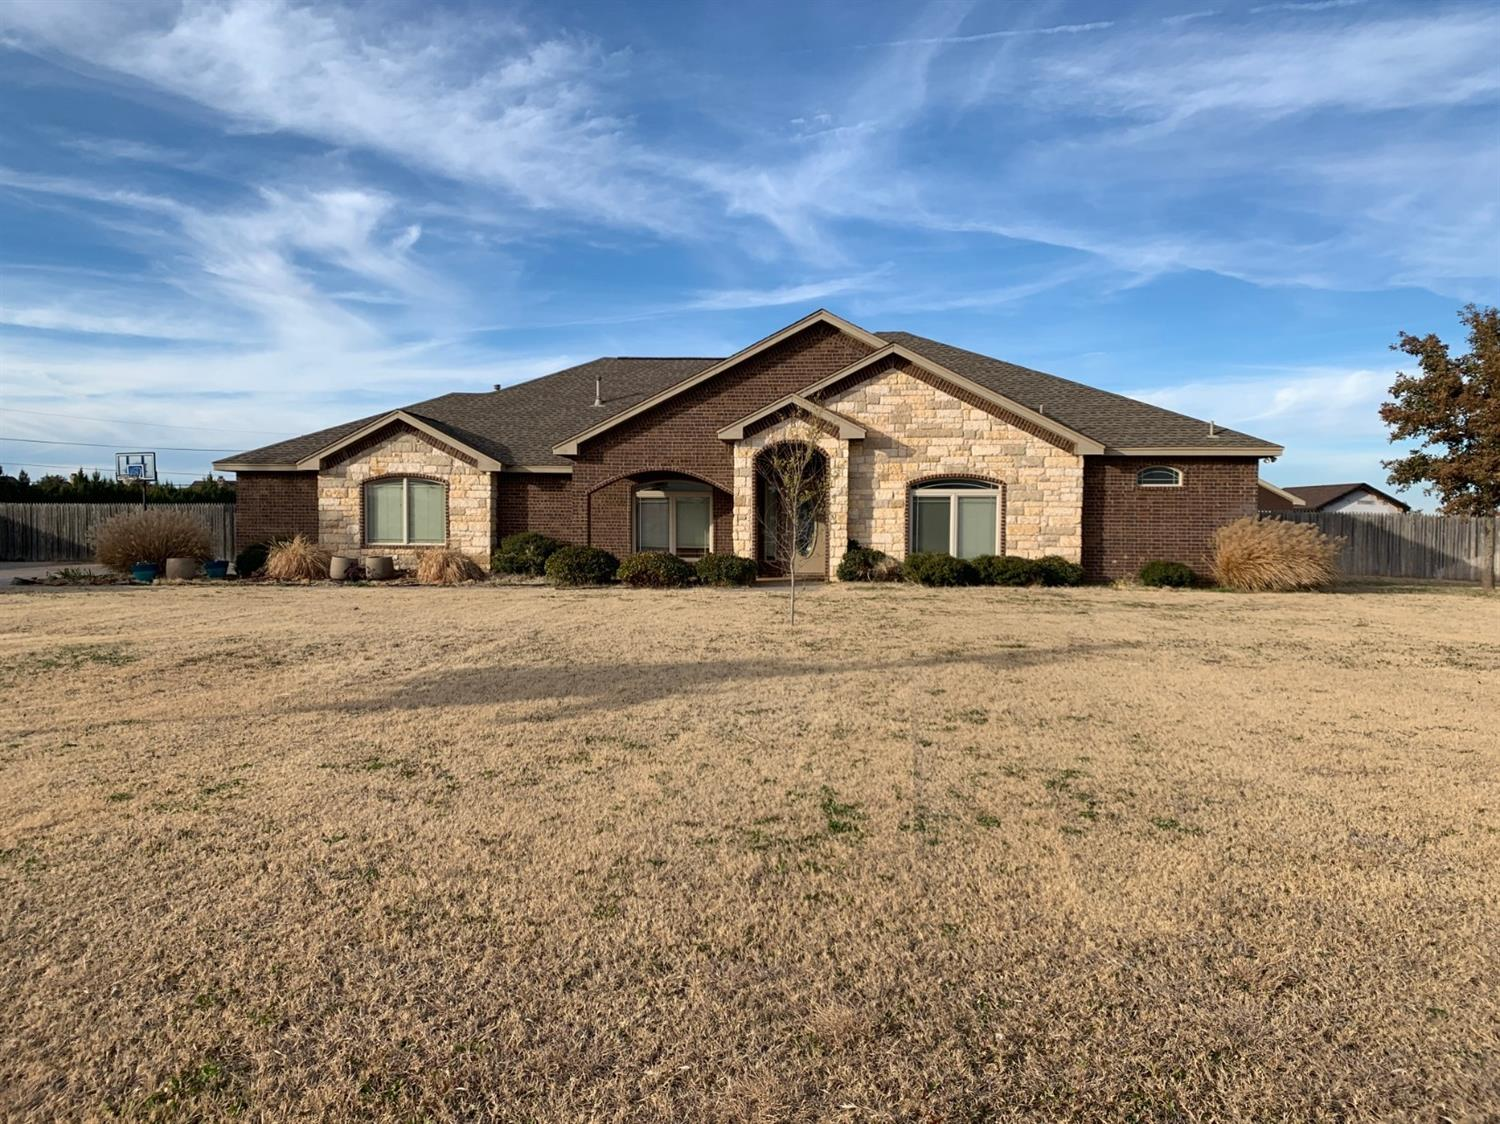 3308 County Road 7550, Lubbock in Lubbock County, TX 79423 Home for Sale